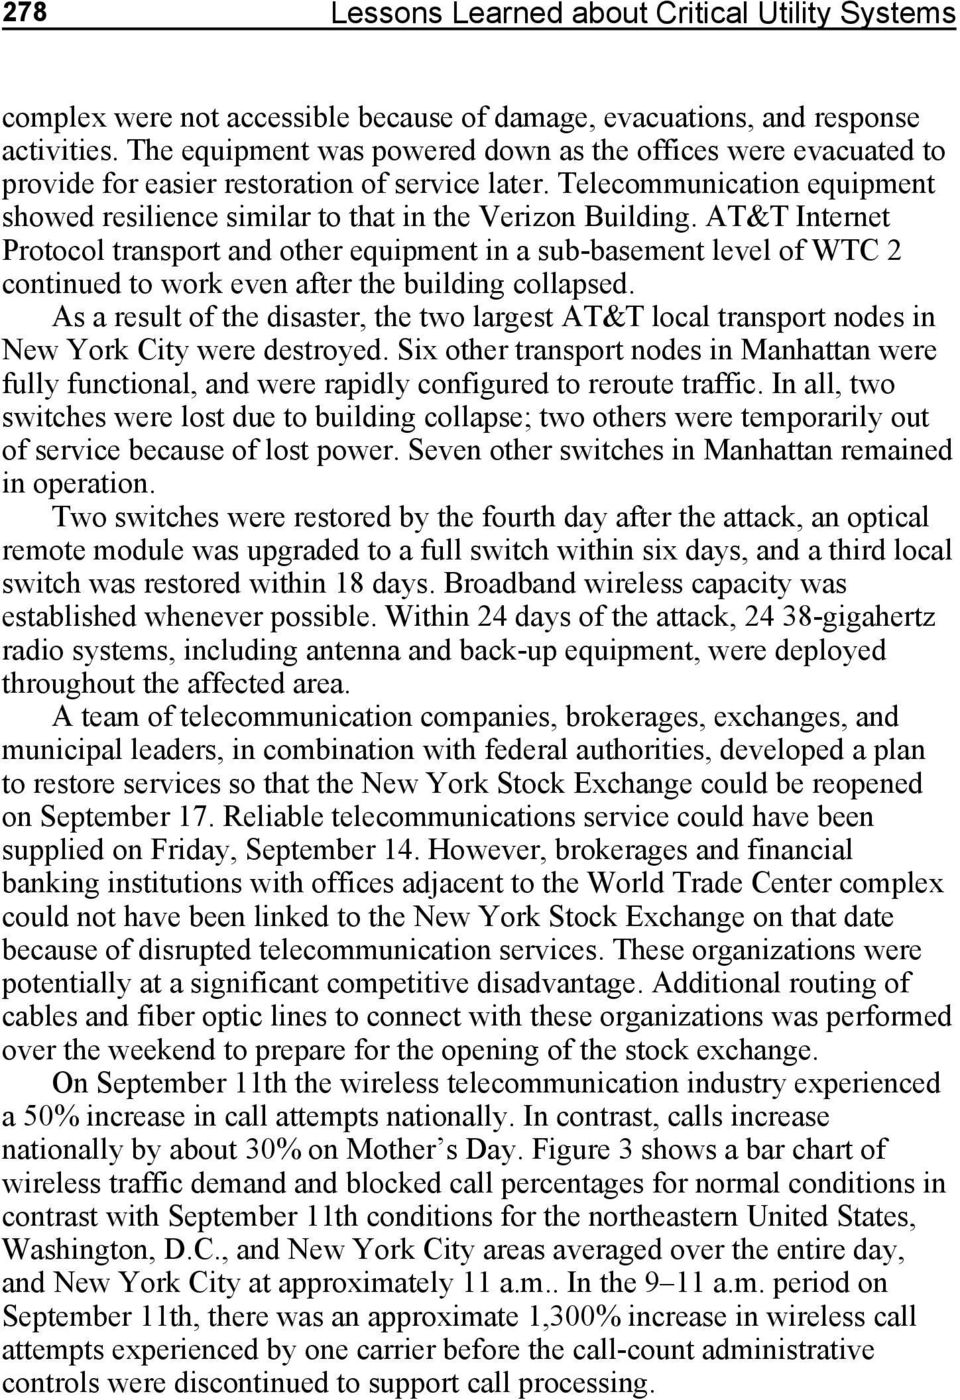 AT&T Internet Protocol transport and other equipment in a sub-basement level of WTC 2 continued to work even after the building collapsed.